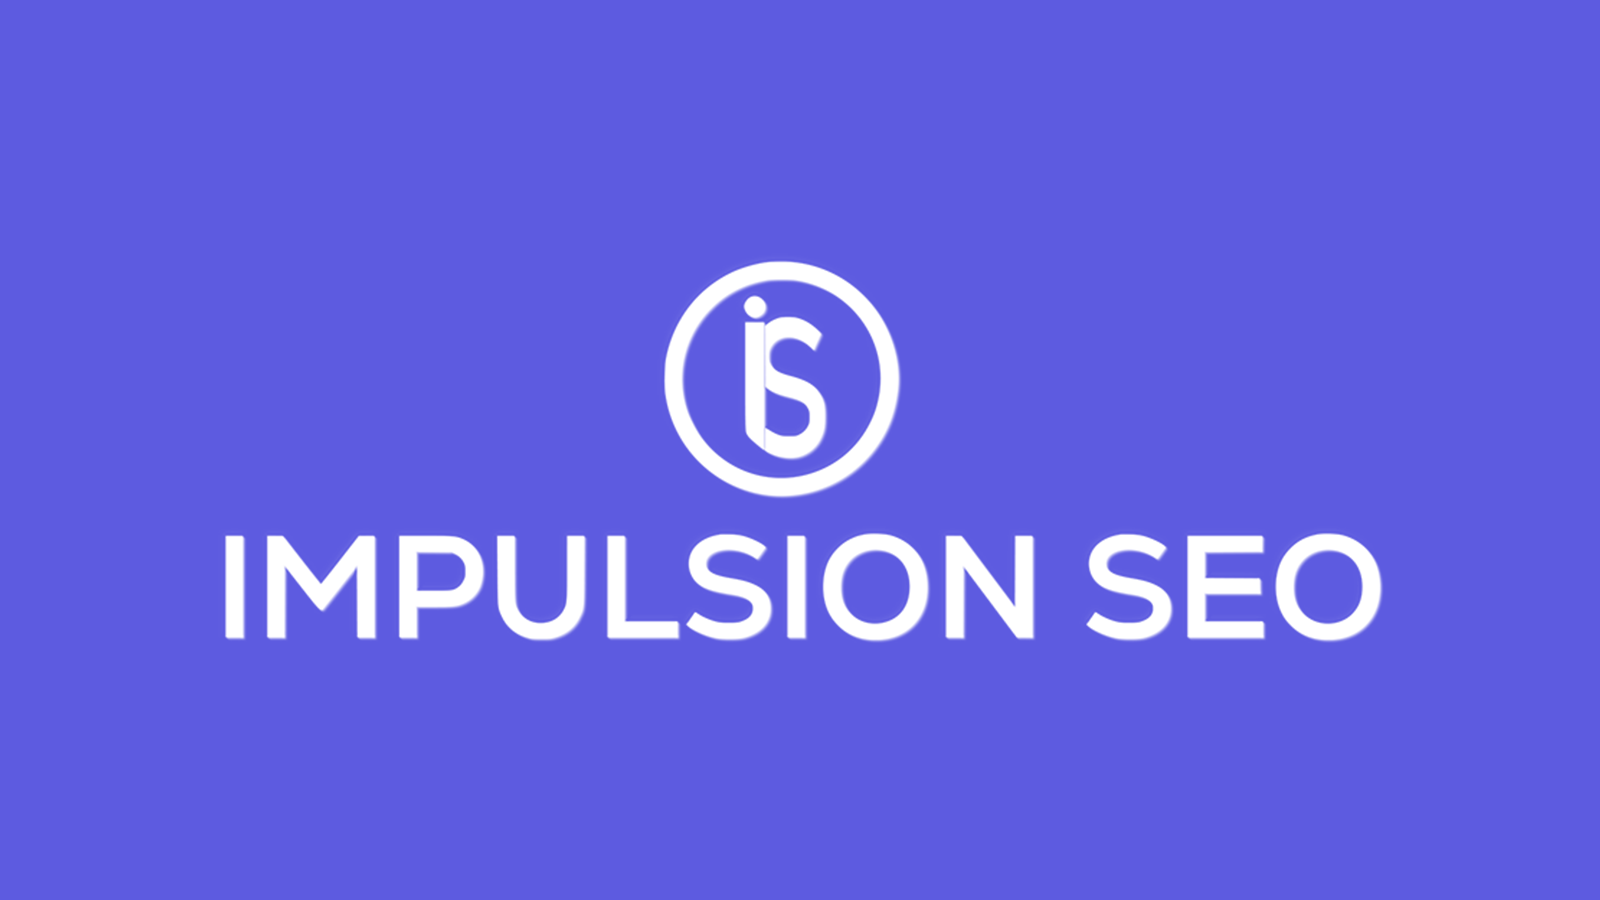 SEO Assistant by Impulsion